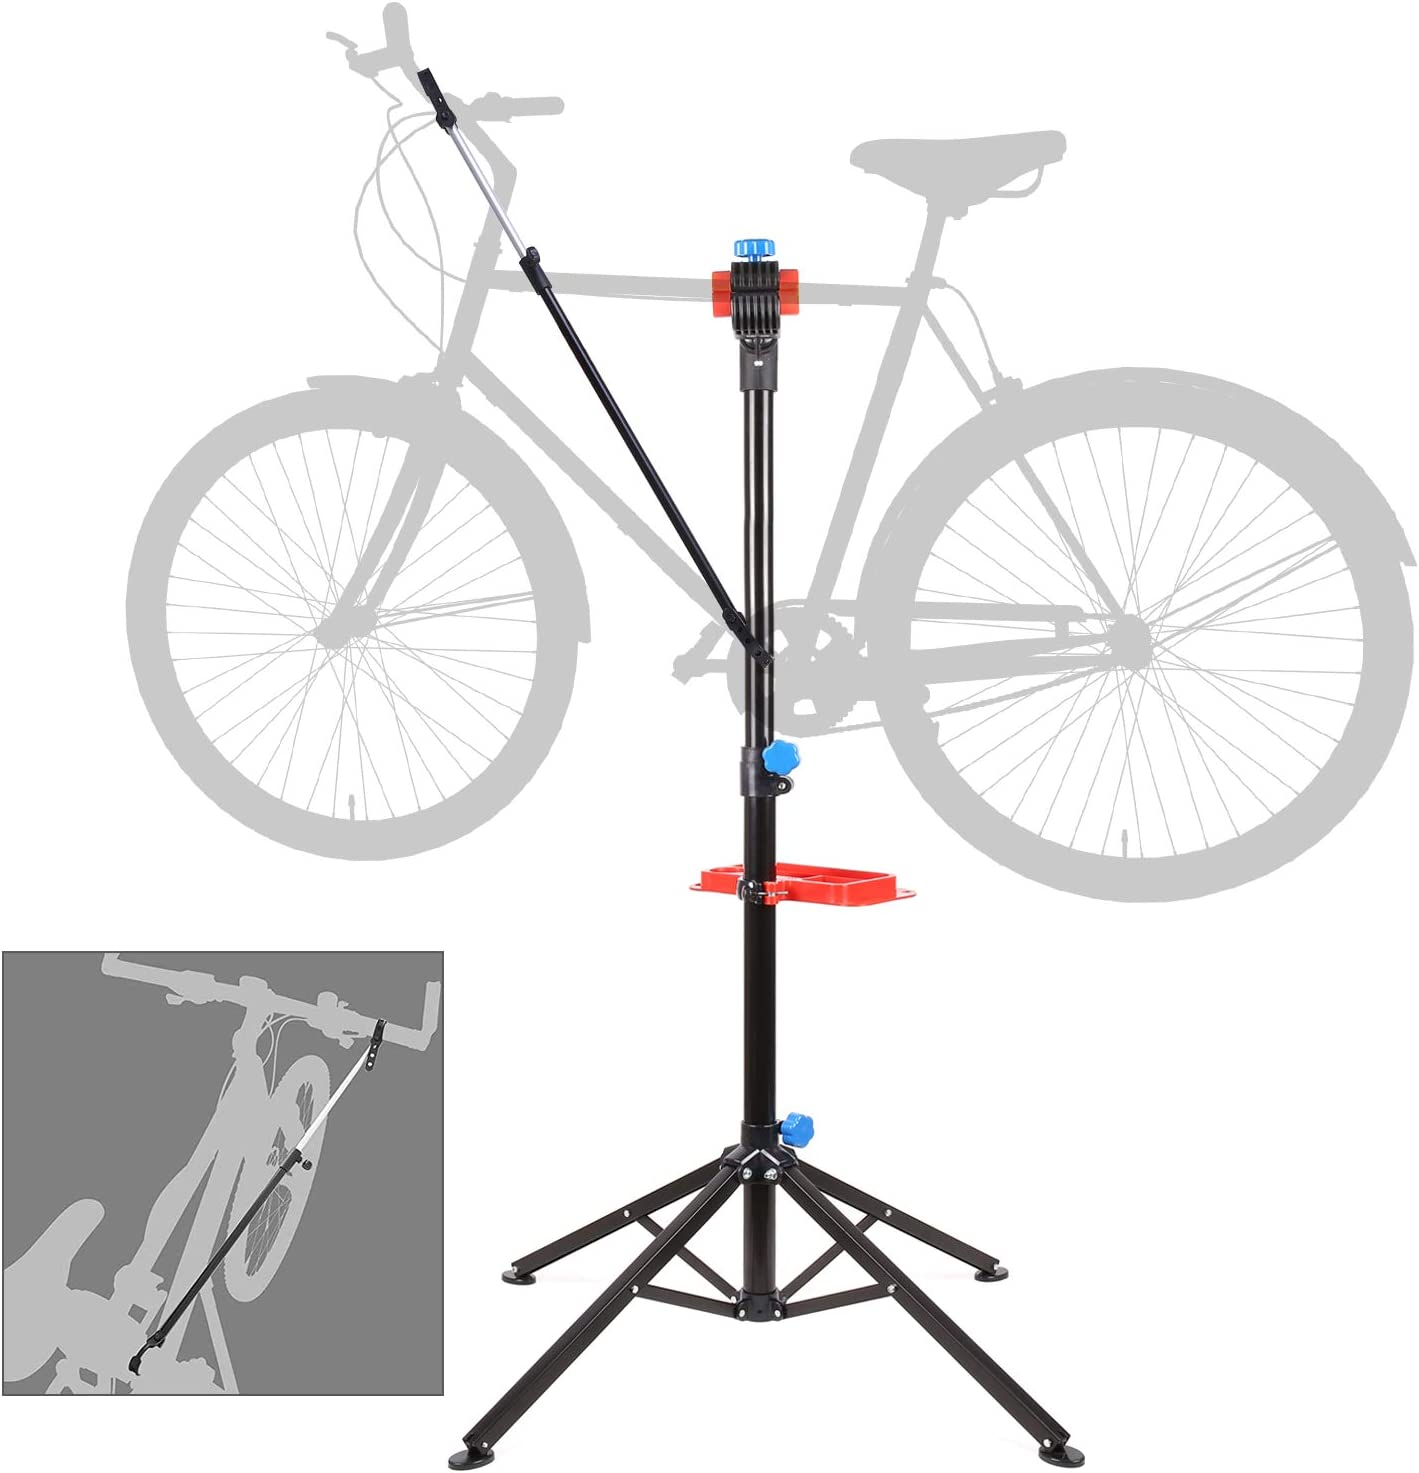 Foldable Mountain Bike Repair Rack Stand Adjustable Bicycle Maintenance Rack Workstand New Version Bike Repair Stand,/Home Mechanic Bicycle Repair Stand